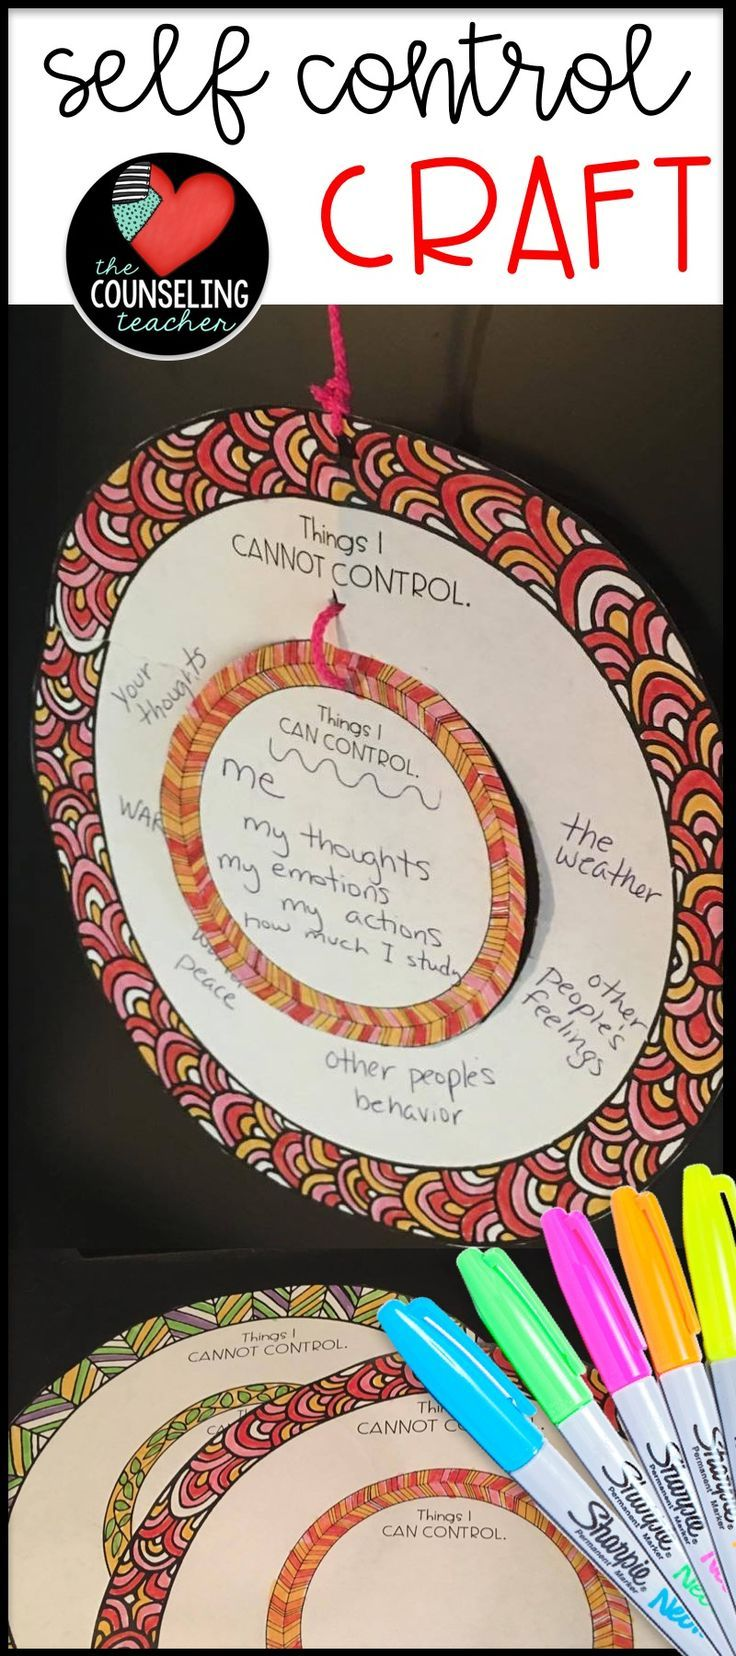 Students will enjoy this calming zen activity that helps them distinguish between things that they can control and those that they cannot control. Once they learn to refocus on the things that they can control, they will feel more self control. The focus of this craft is to develop a positive mindset about life and to learn to let go of things that are not worth worrying over.